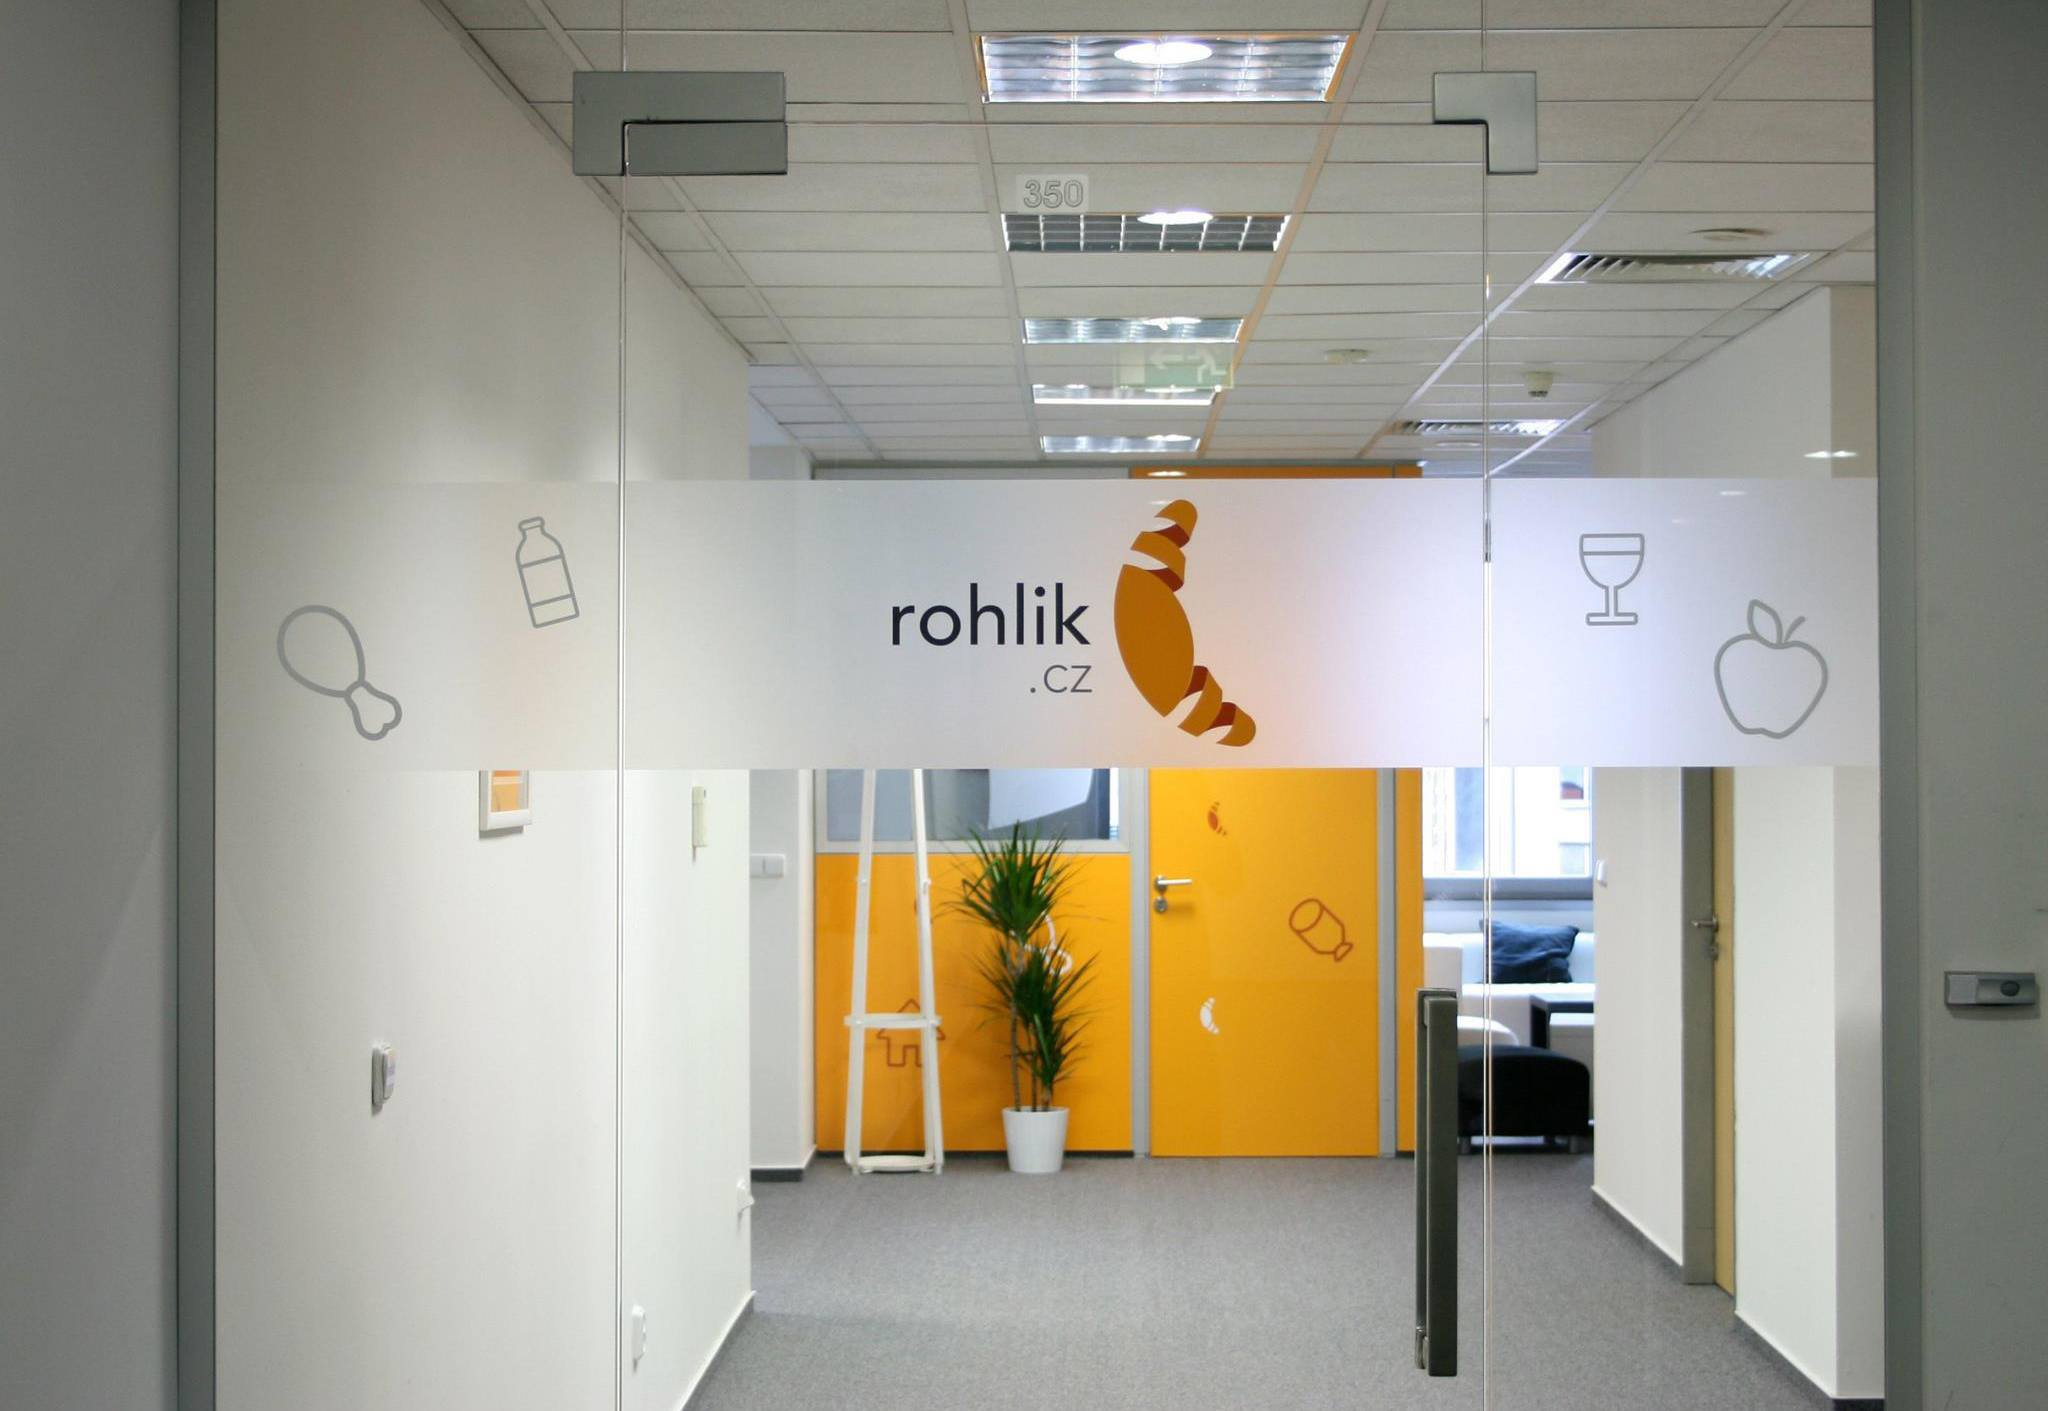 A Look Inside Rohlik.cz's New Prague Office